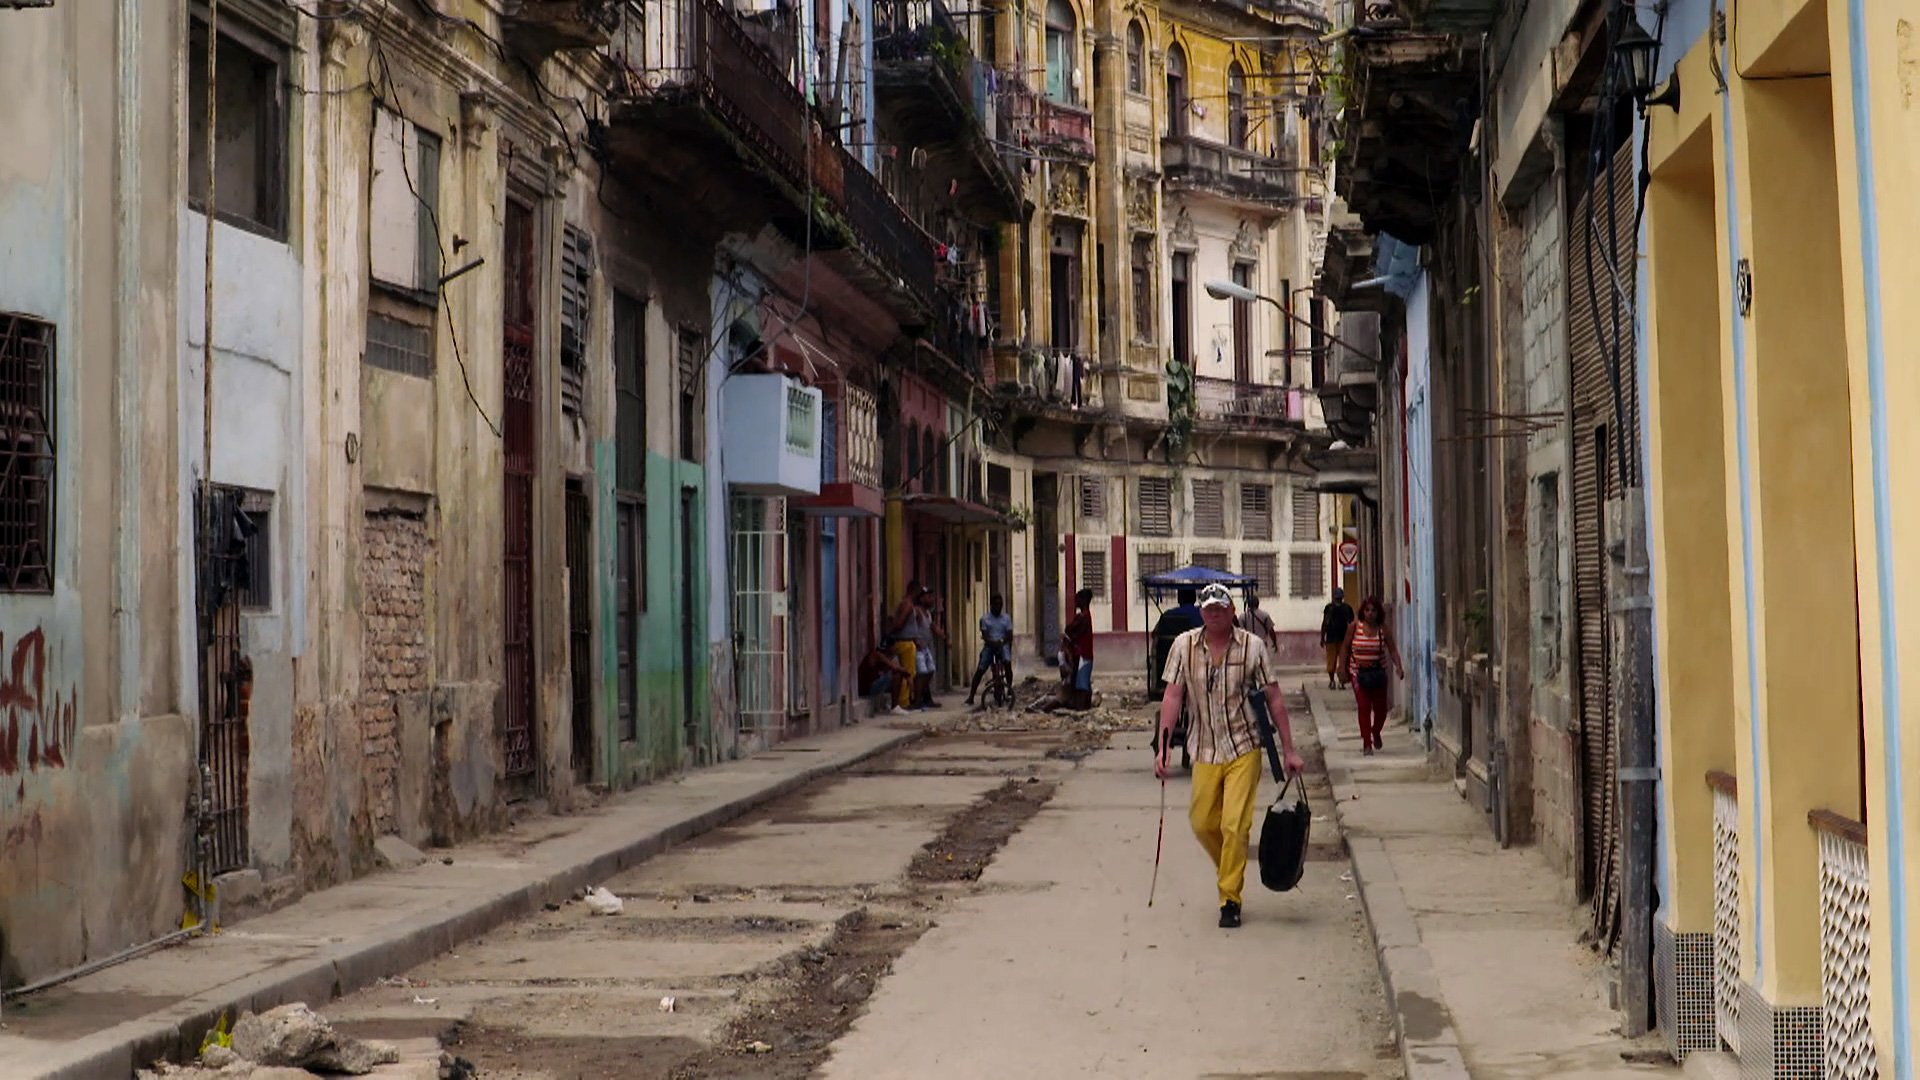 Cuba's Crumbling Infrastructure